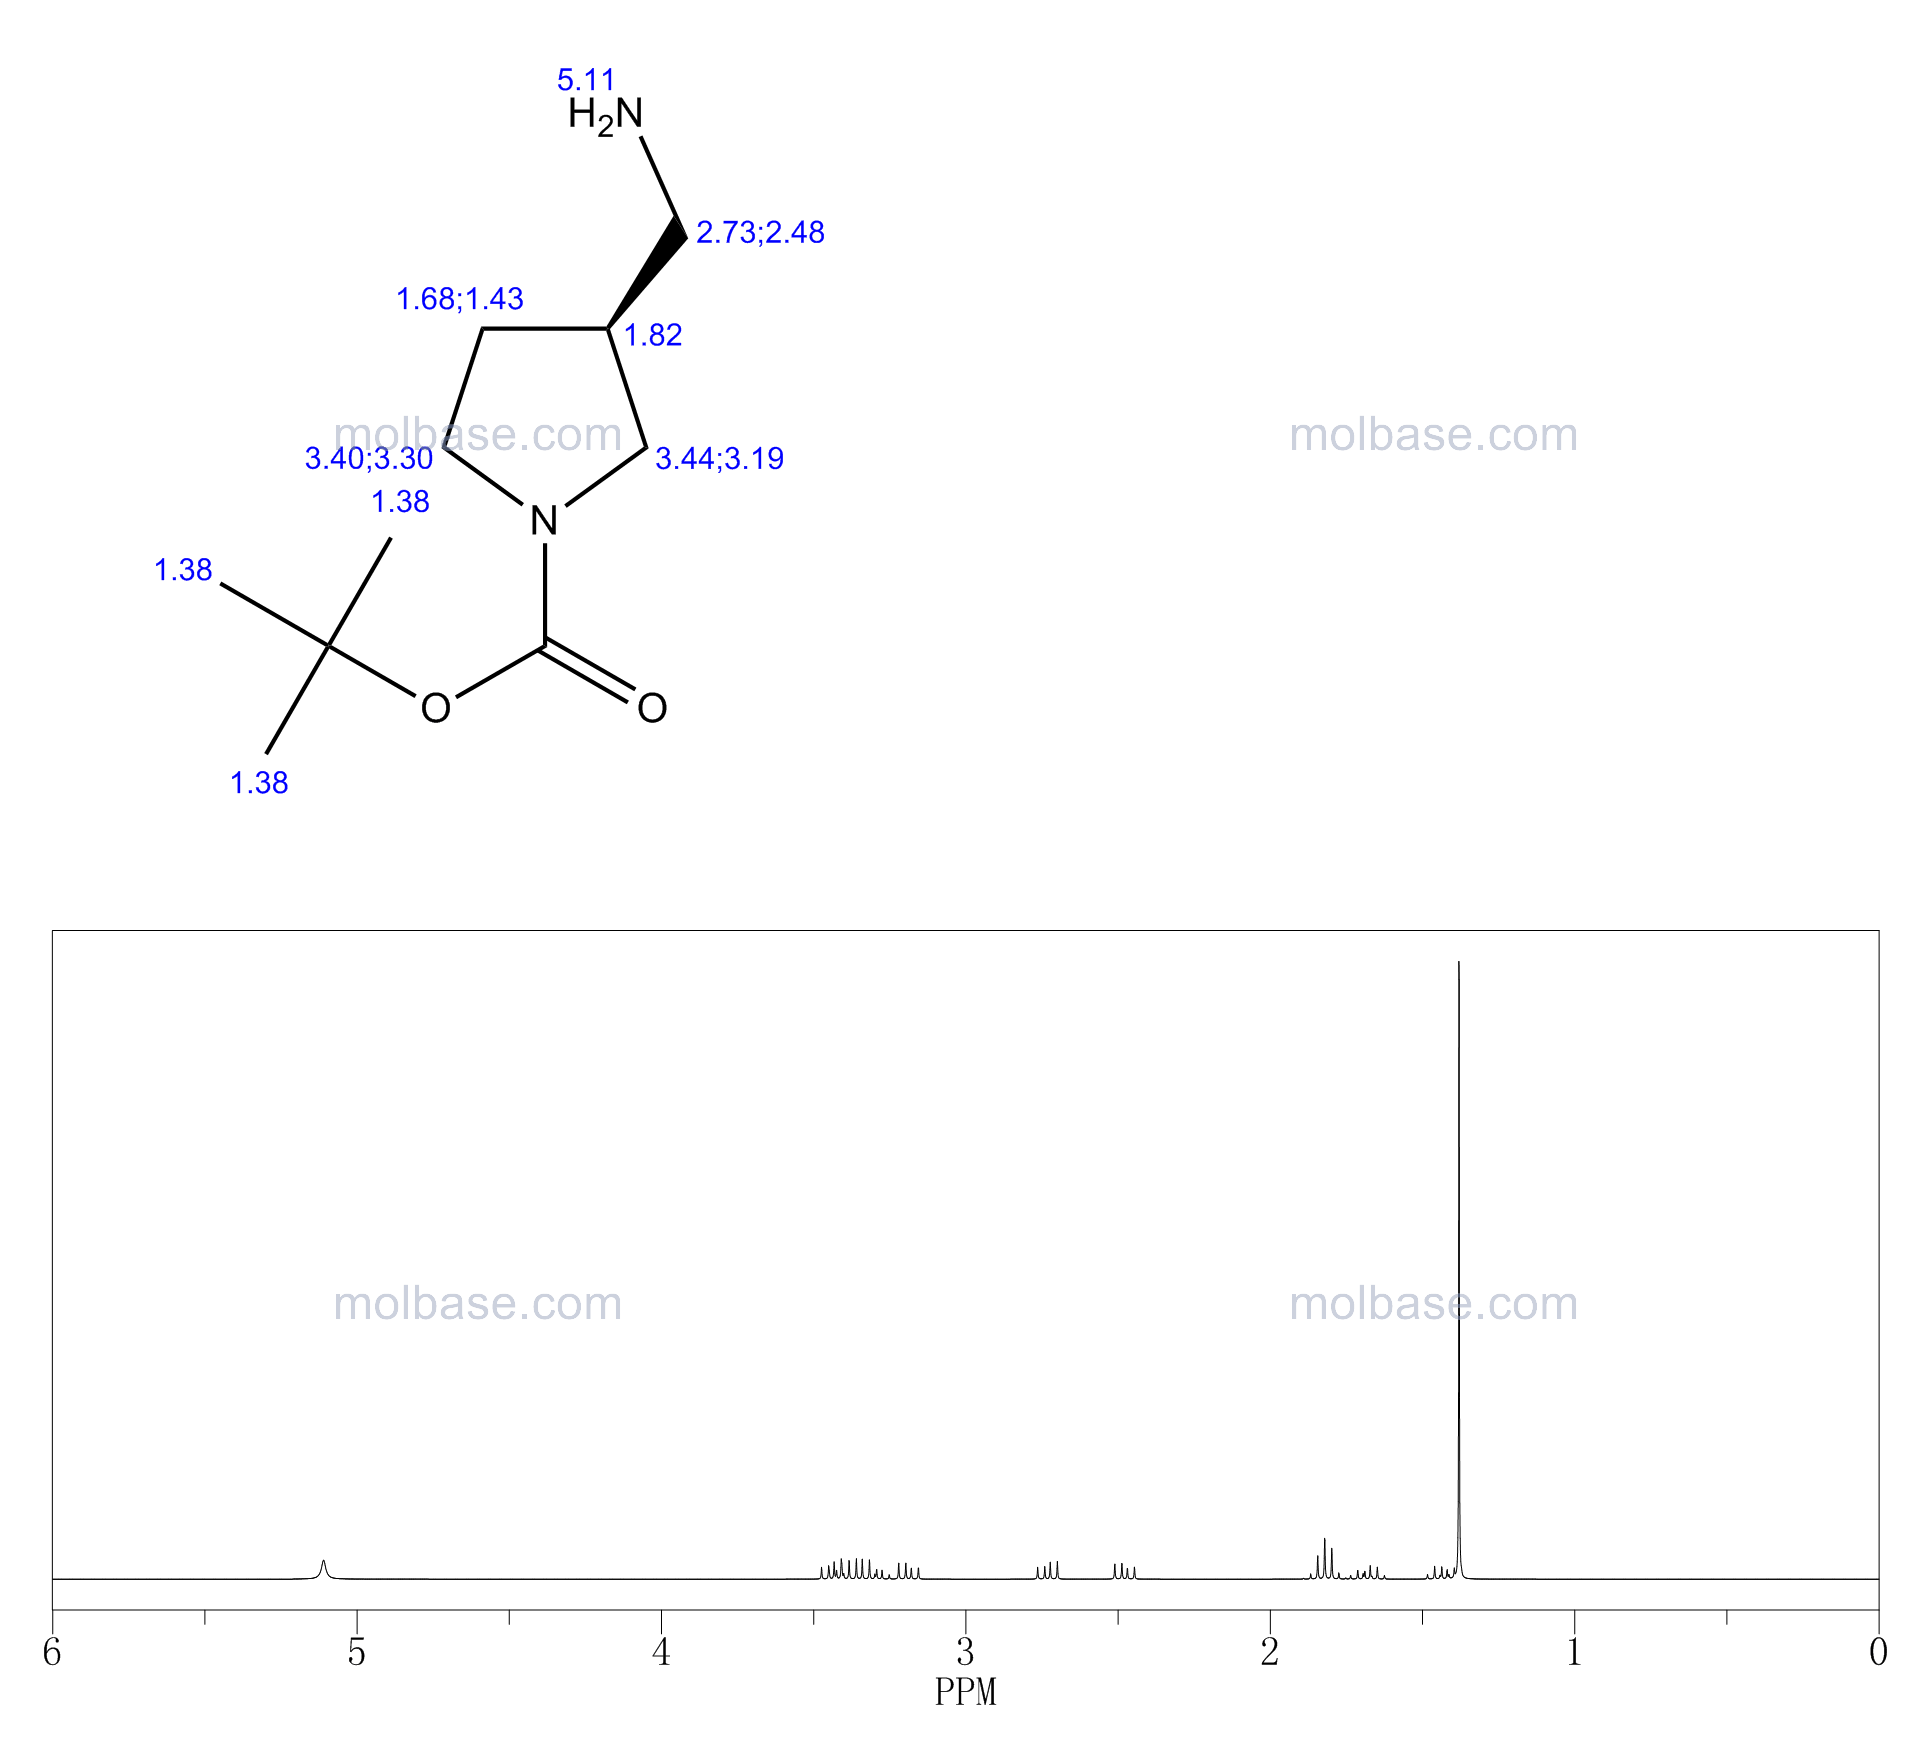 tert-butyl (3S)-3-(aminomethyl)pyrrolidine-1-carboxylate NMR spectra analysis, Chemical CAS NO. 199175-10-5 NMR spectral analysis, tert-butyl (3S)-3-(aminomethyl)pyrrolidine-1-carboxylate C-NMR spectrum